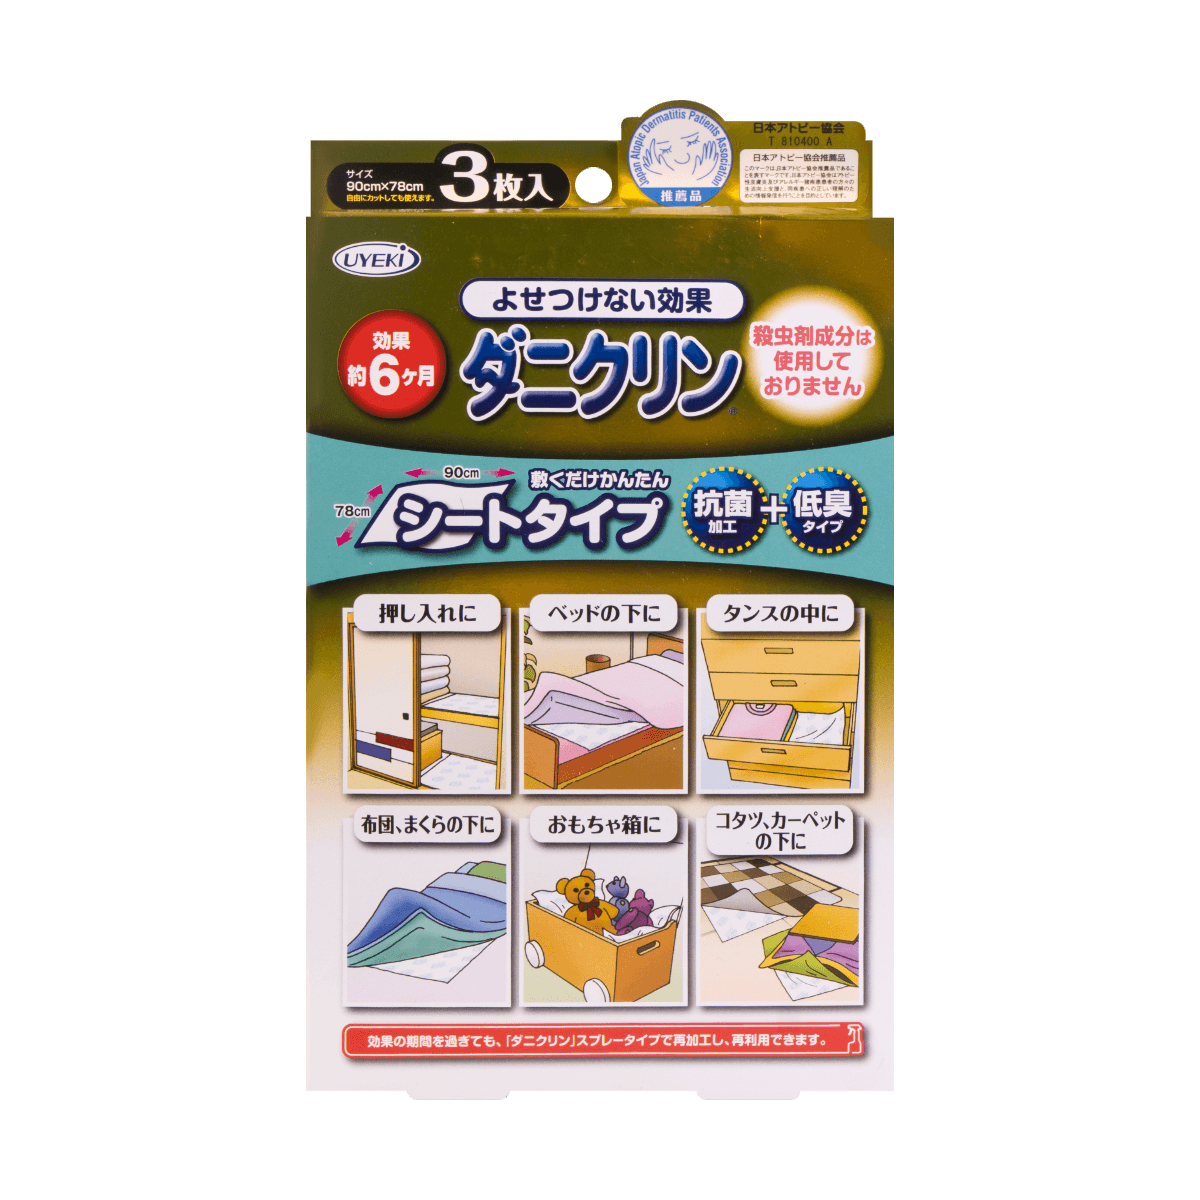 Yamibuy.com:Customer reviews:UYEKI Dust Mite Repellent Sheet Type for Bed and Drawers 3pcs 90cmX78cm